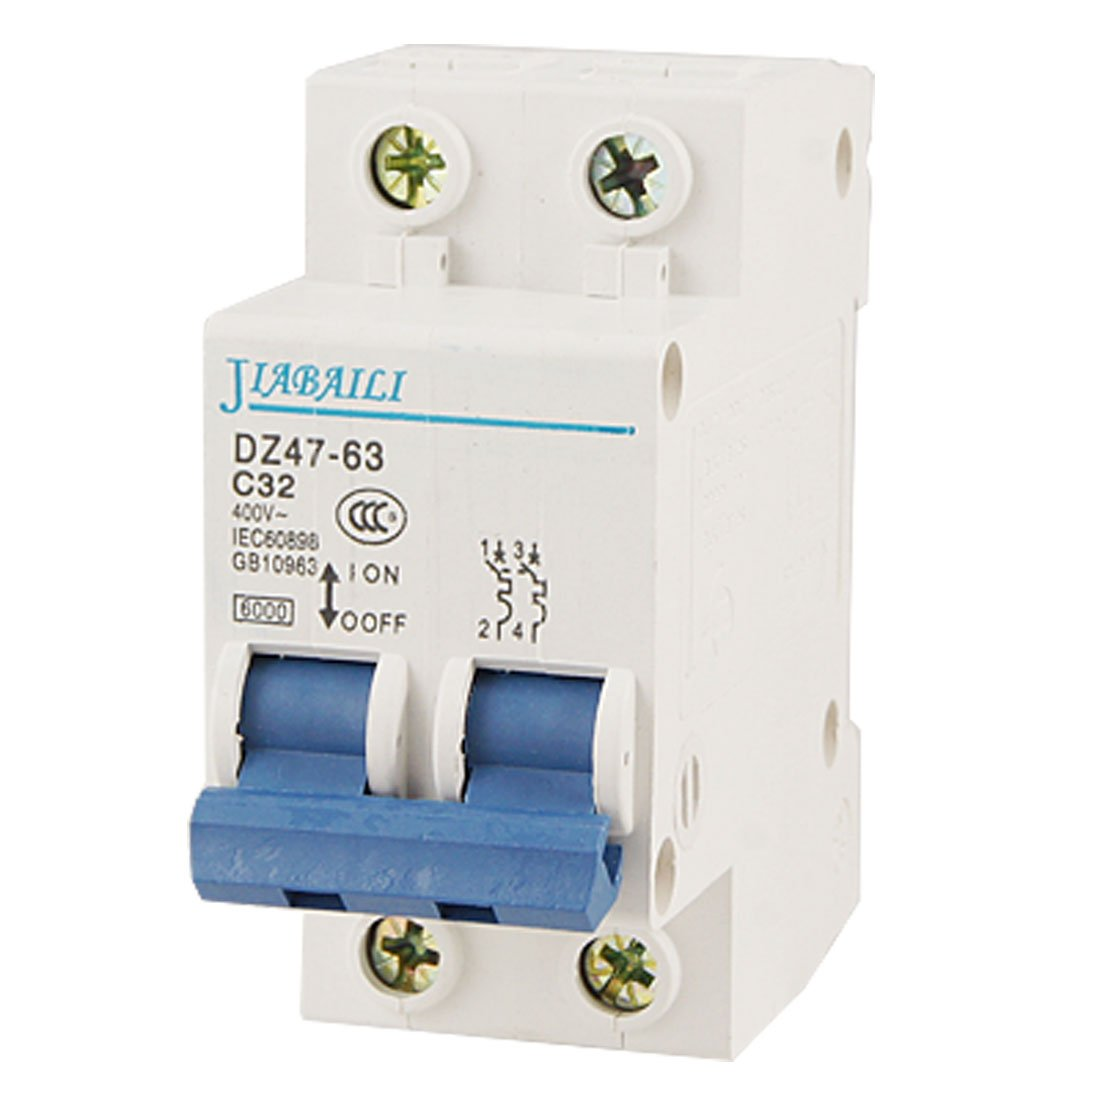 Uxcell a11091700ux0059 Two 2 Poles DIN Rail Mount Miniature Circuit Breaker 2P, AC, 400V, 32 Amp, 6000 Amp